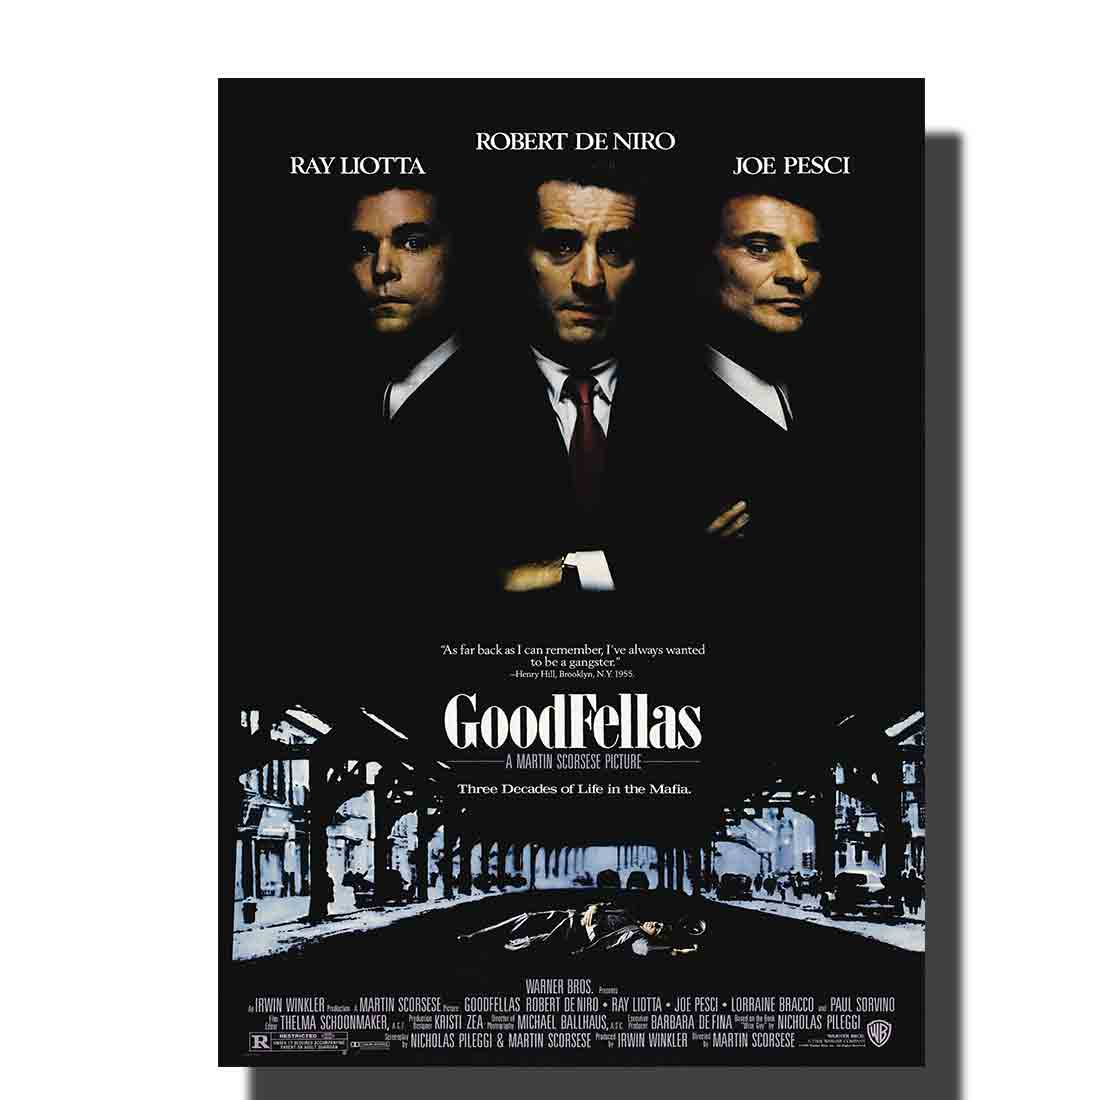 L534 GOODFELLAS Movie Poster Robert DeNiro Gangster Mob fabric art painting 14x21 24x36 print Decoration Room wall Picture image